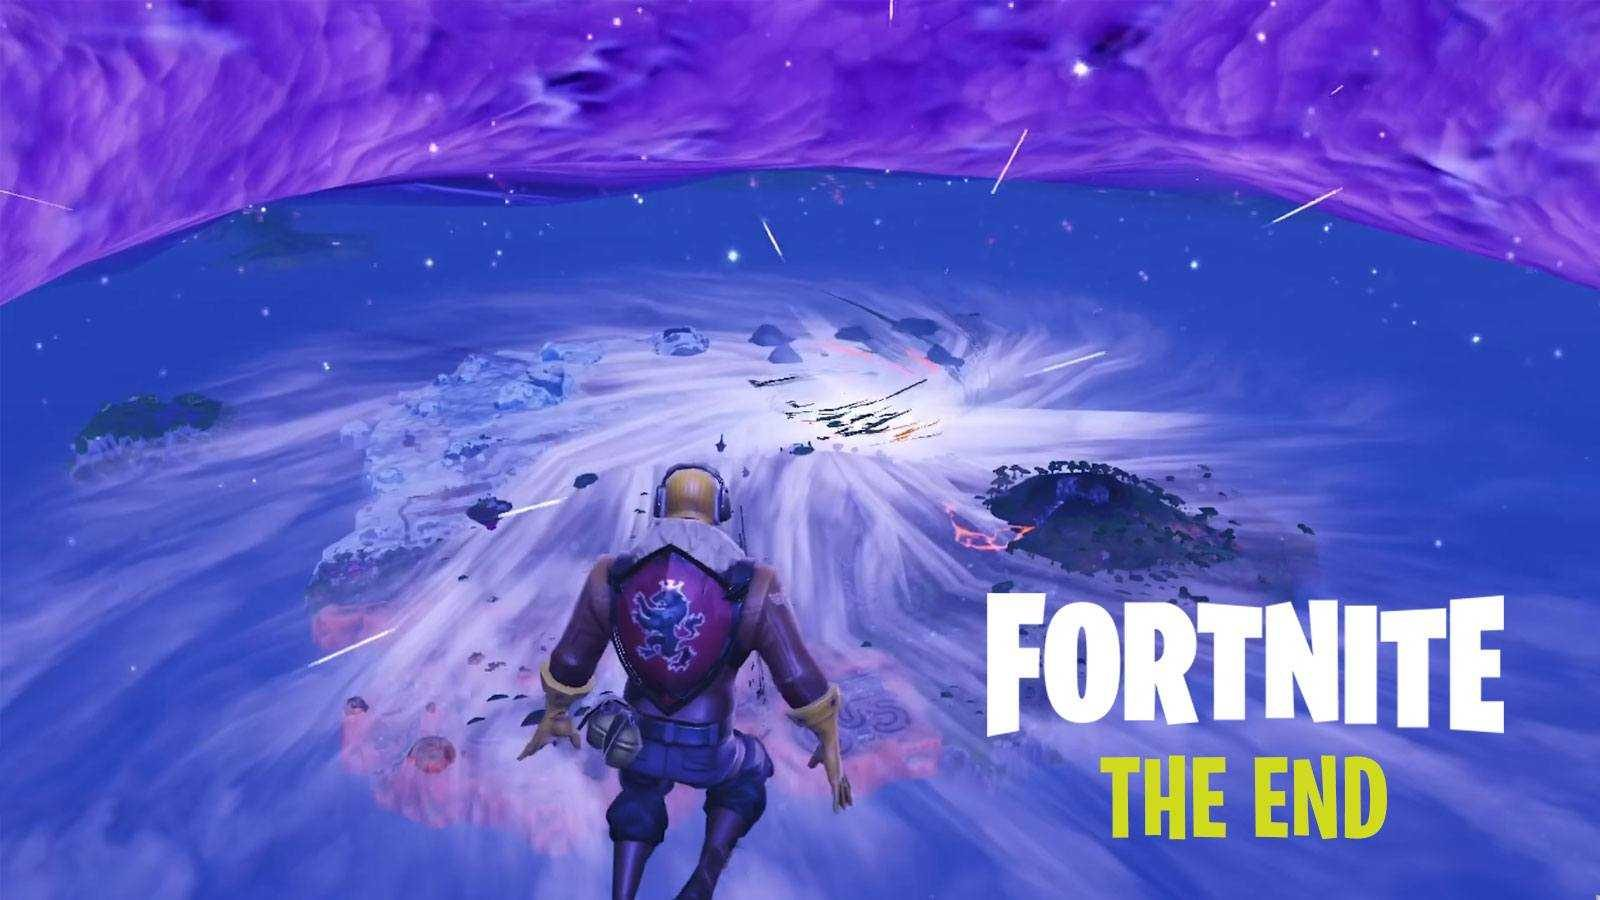 Why Fortnite is Down and Shows a Blank Screen